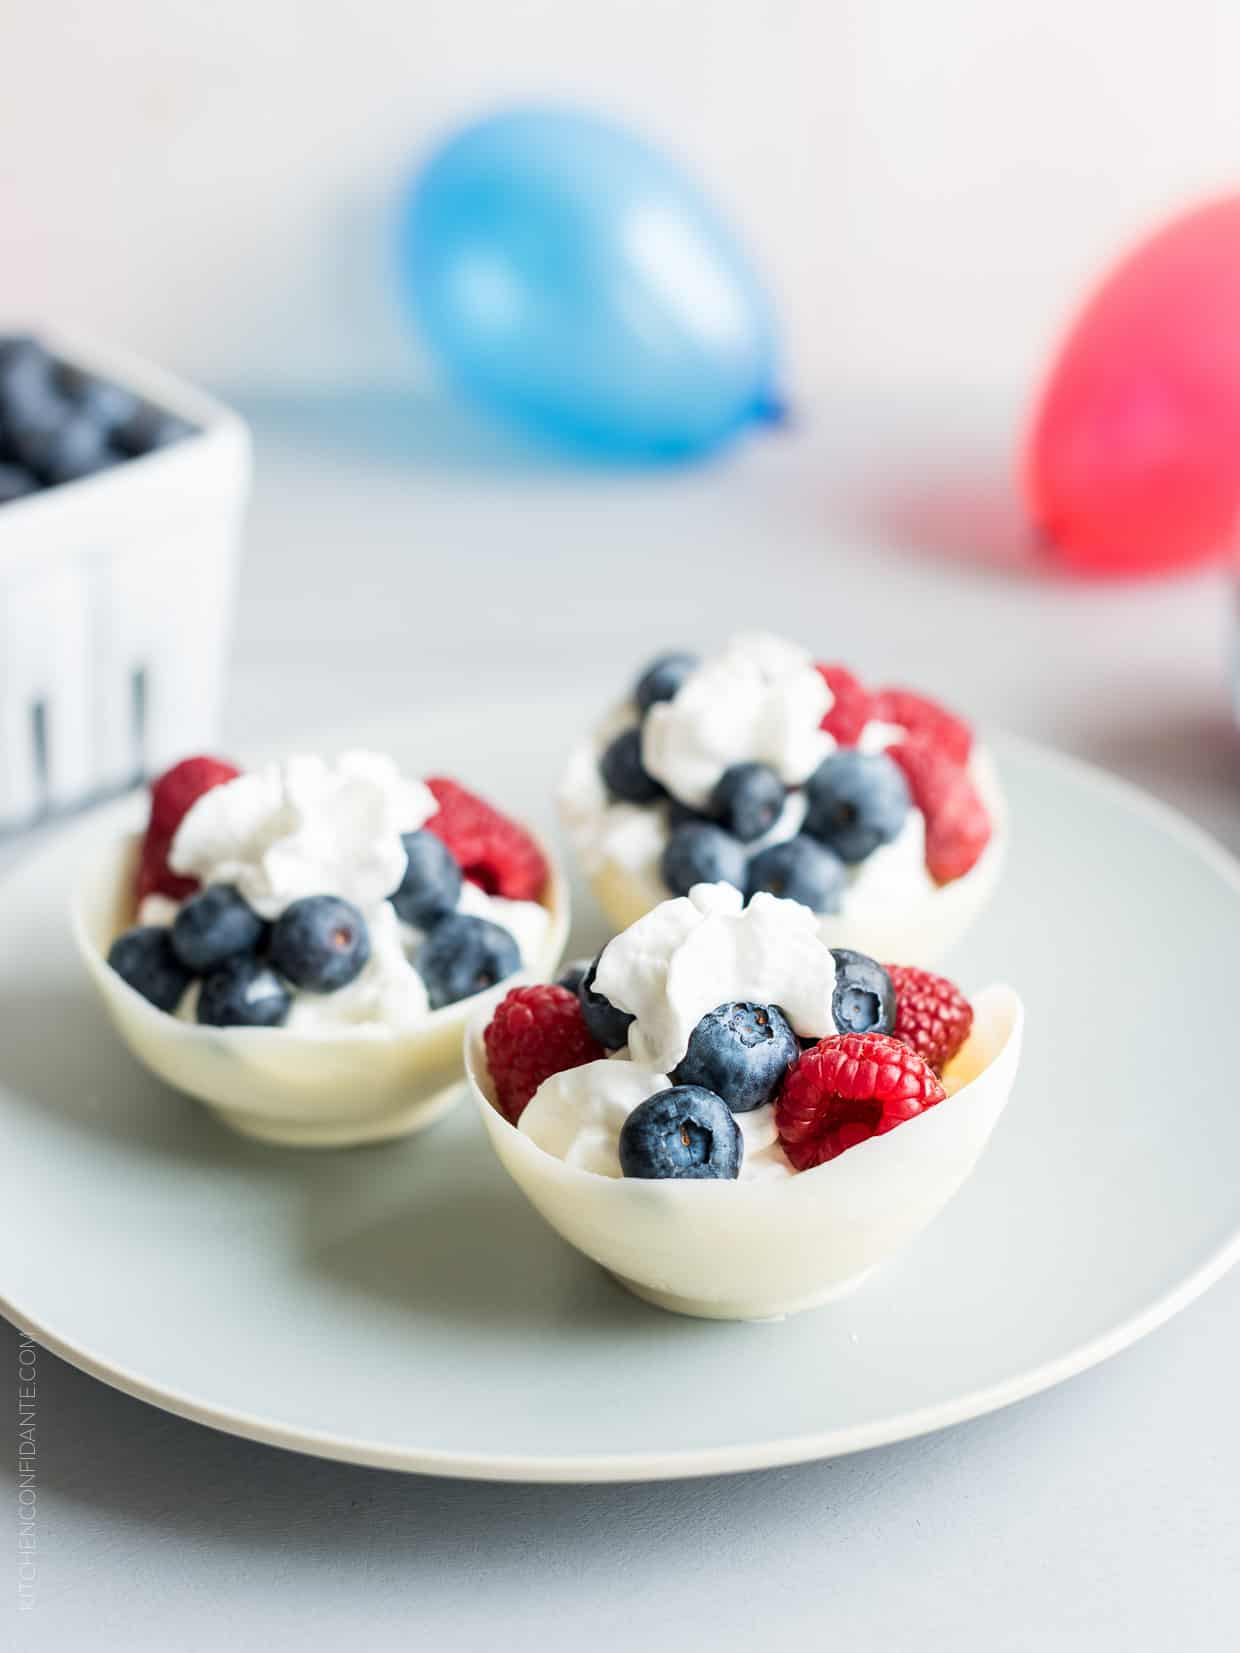 5 Ways to Go Red White and Blue for the 4th of July - these White Chocolate Berry Bowls are so fun and just one way to get festive!